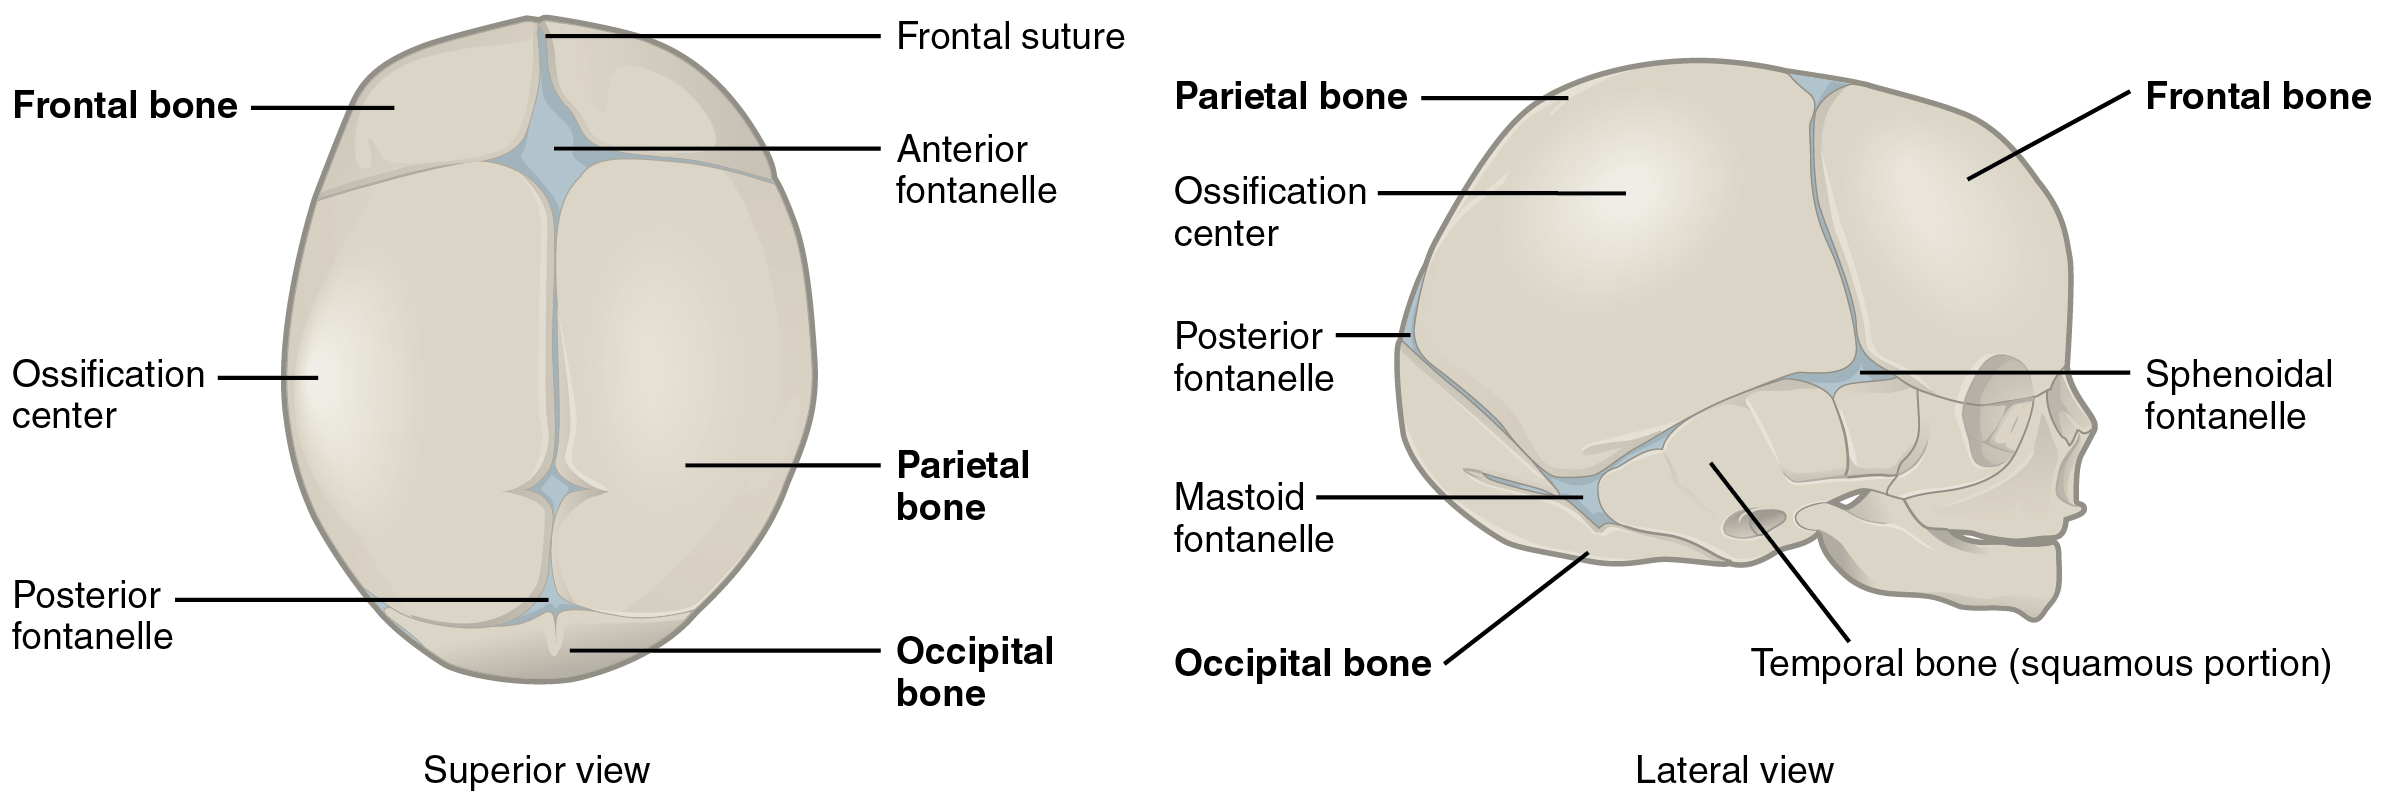 Embryonic Development Of The Axial Skeleton Anatomy And